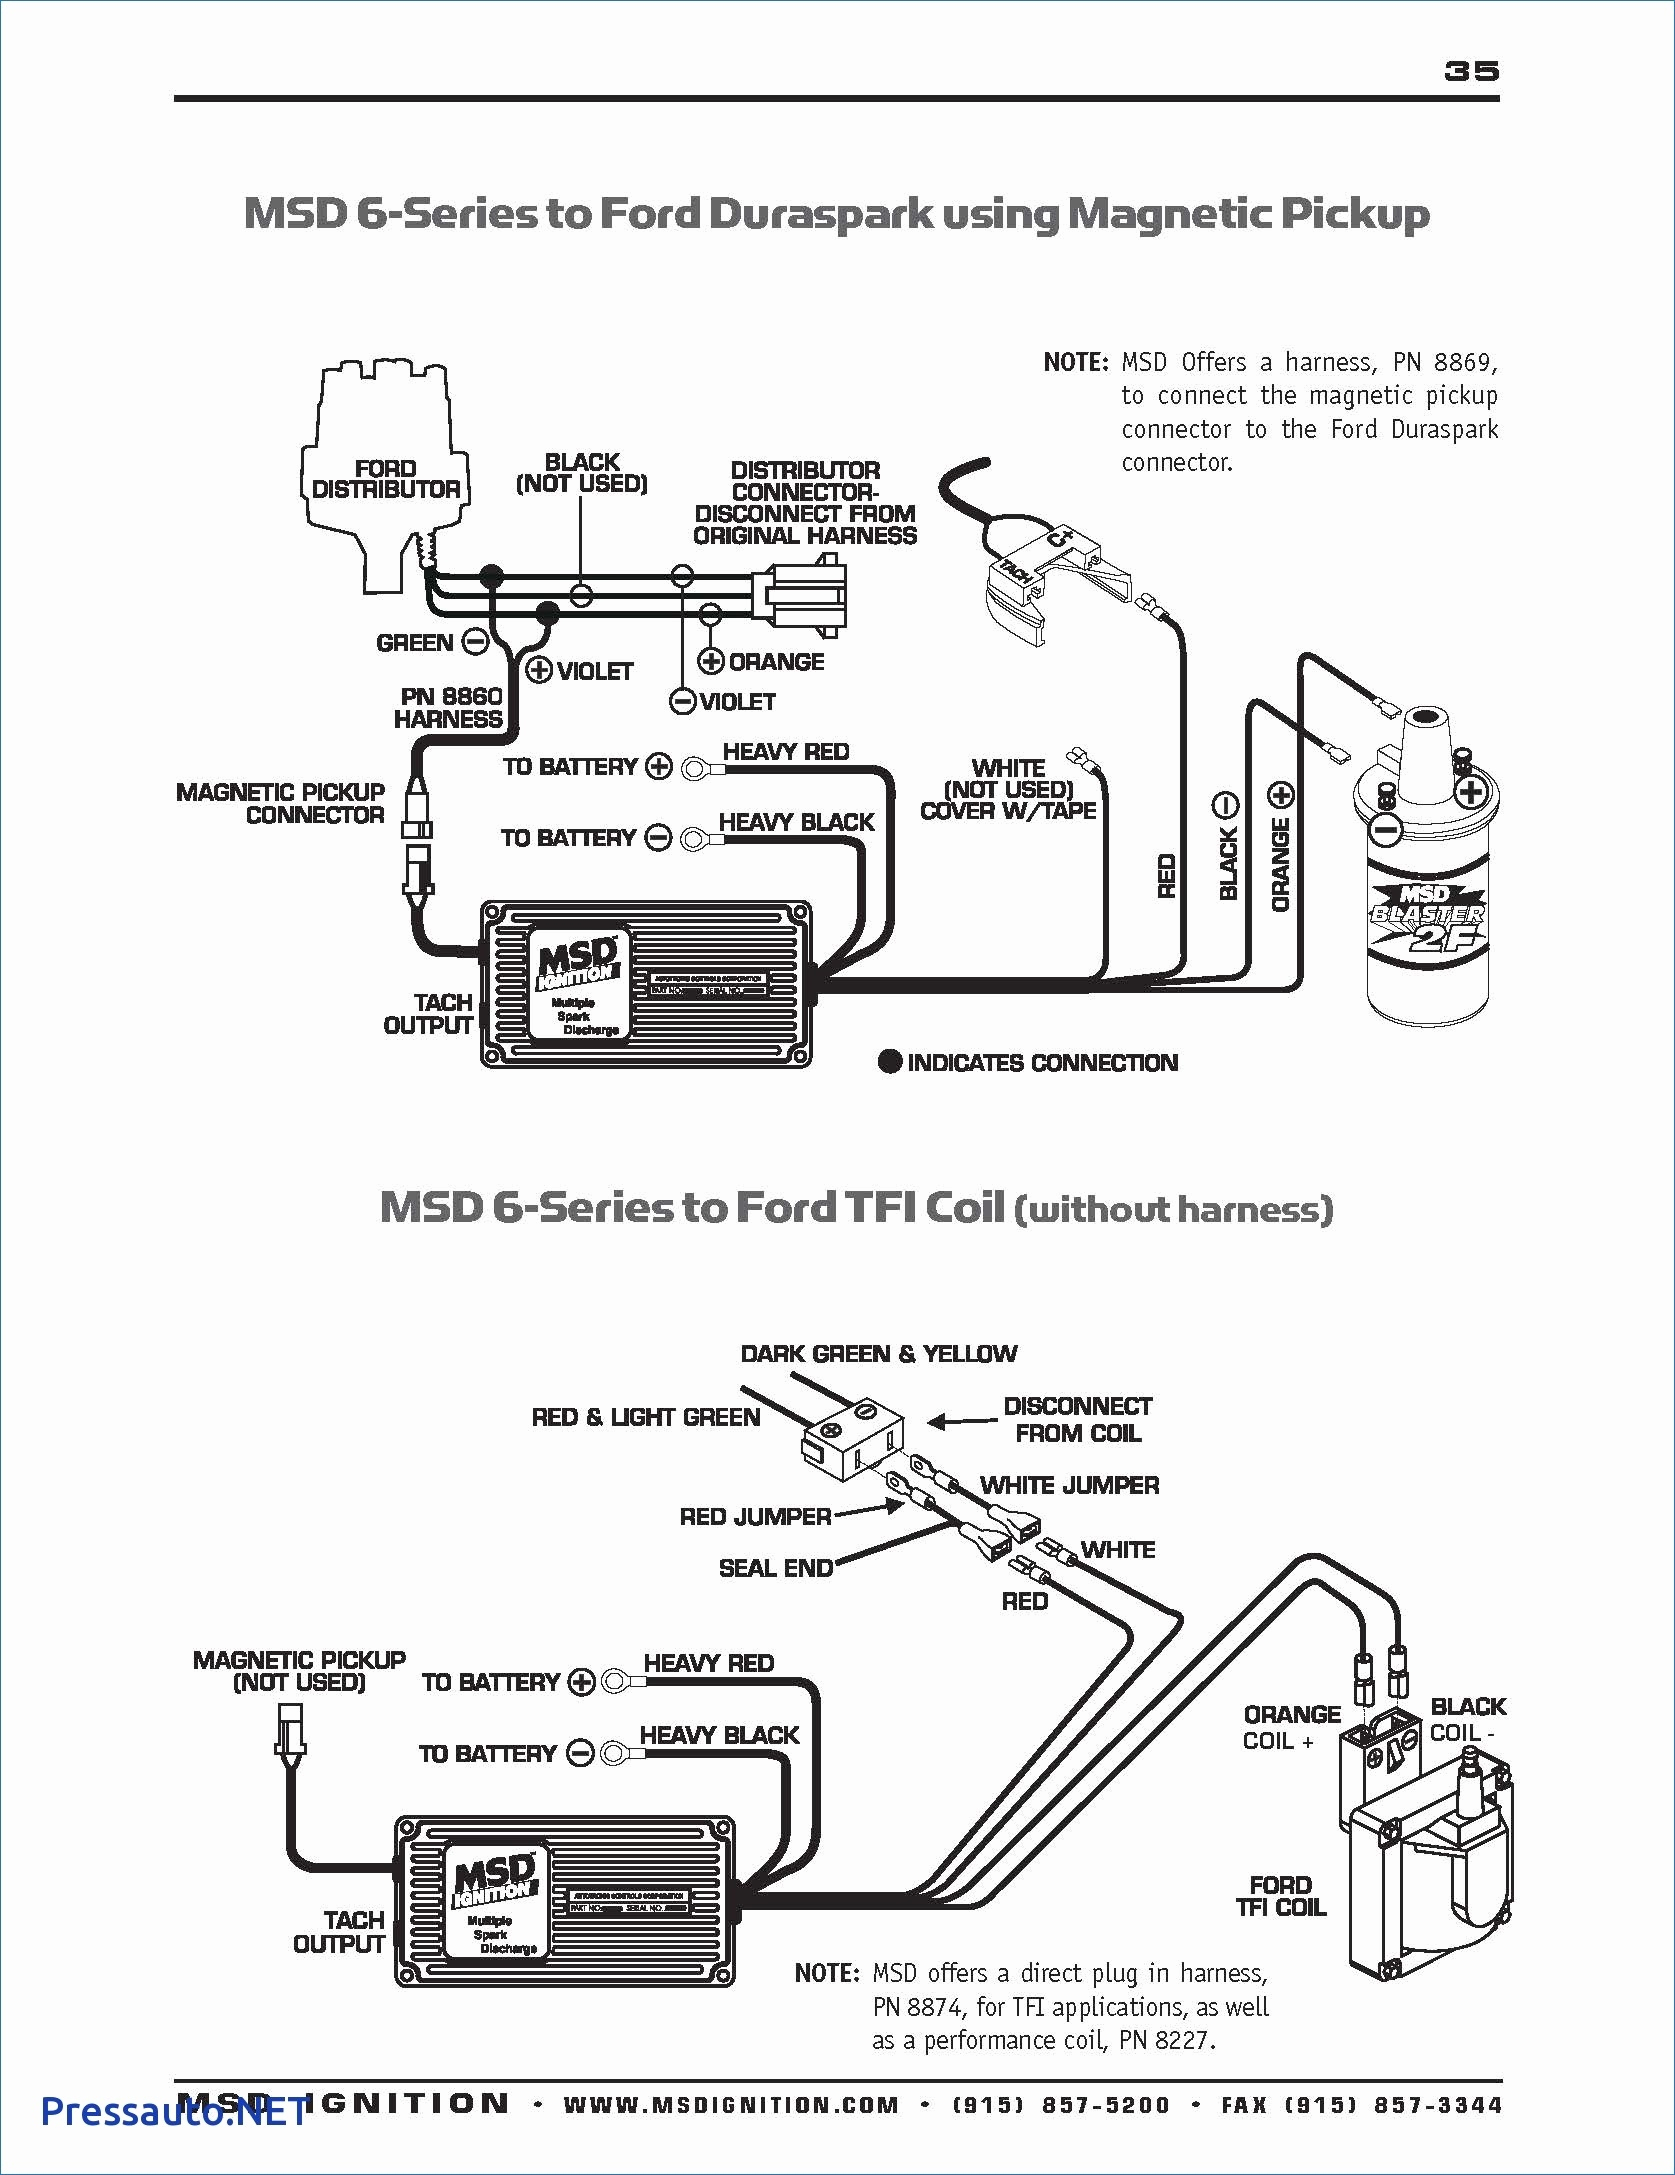 Msd 6Al Wiring Diagram For Chevy 350 Small Block | Wiring Library - Msd Digital 6 Plus Wiring Diagram